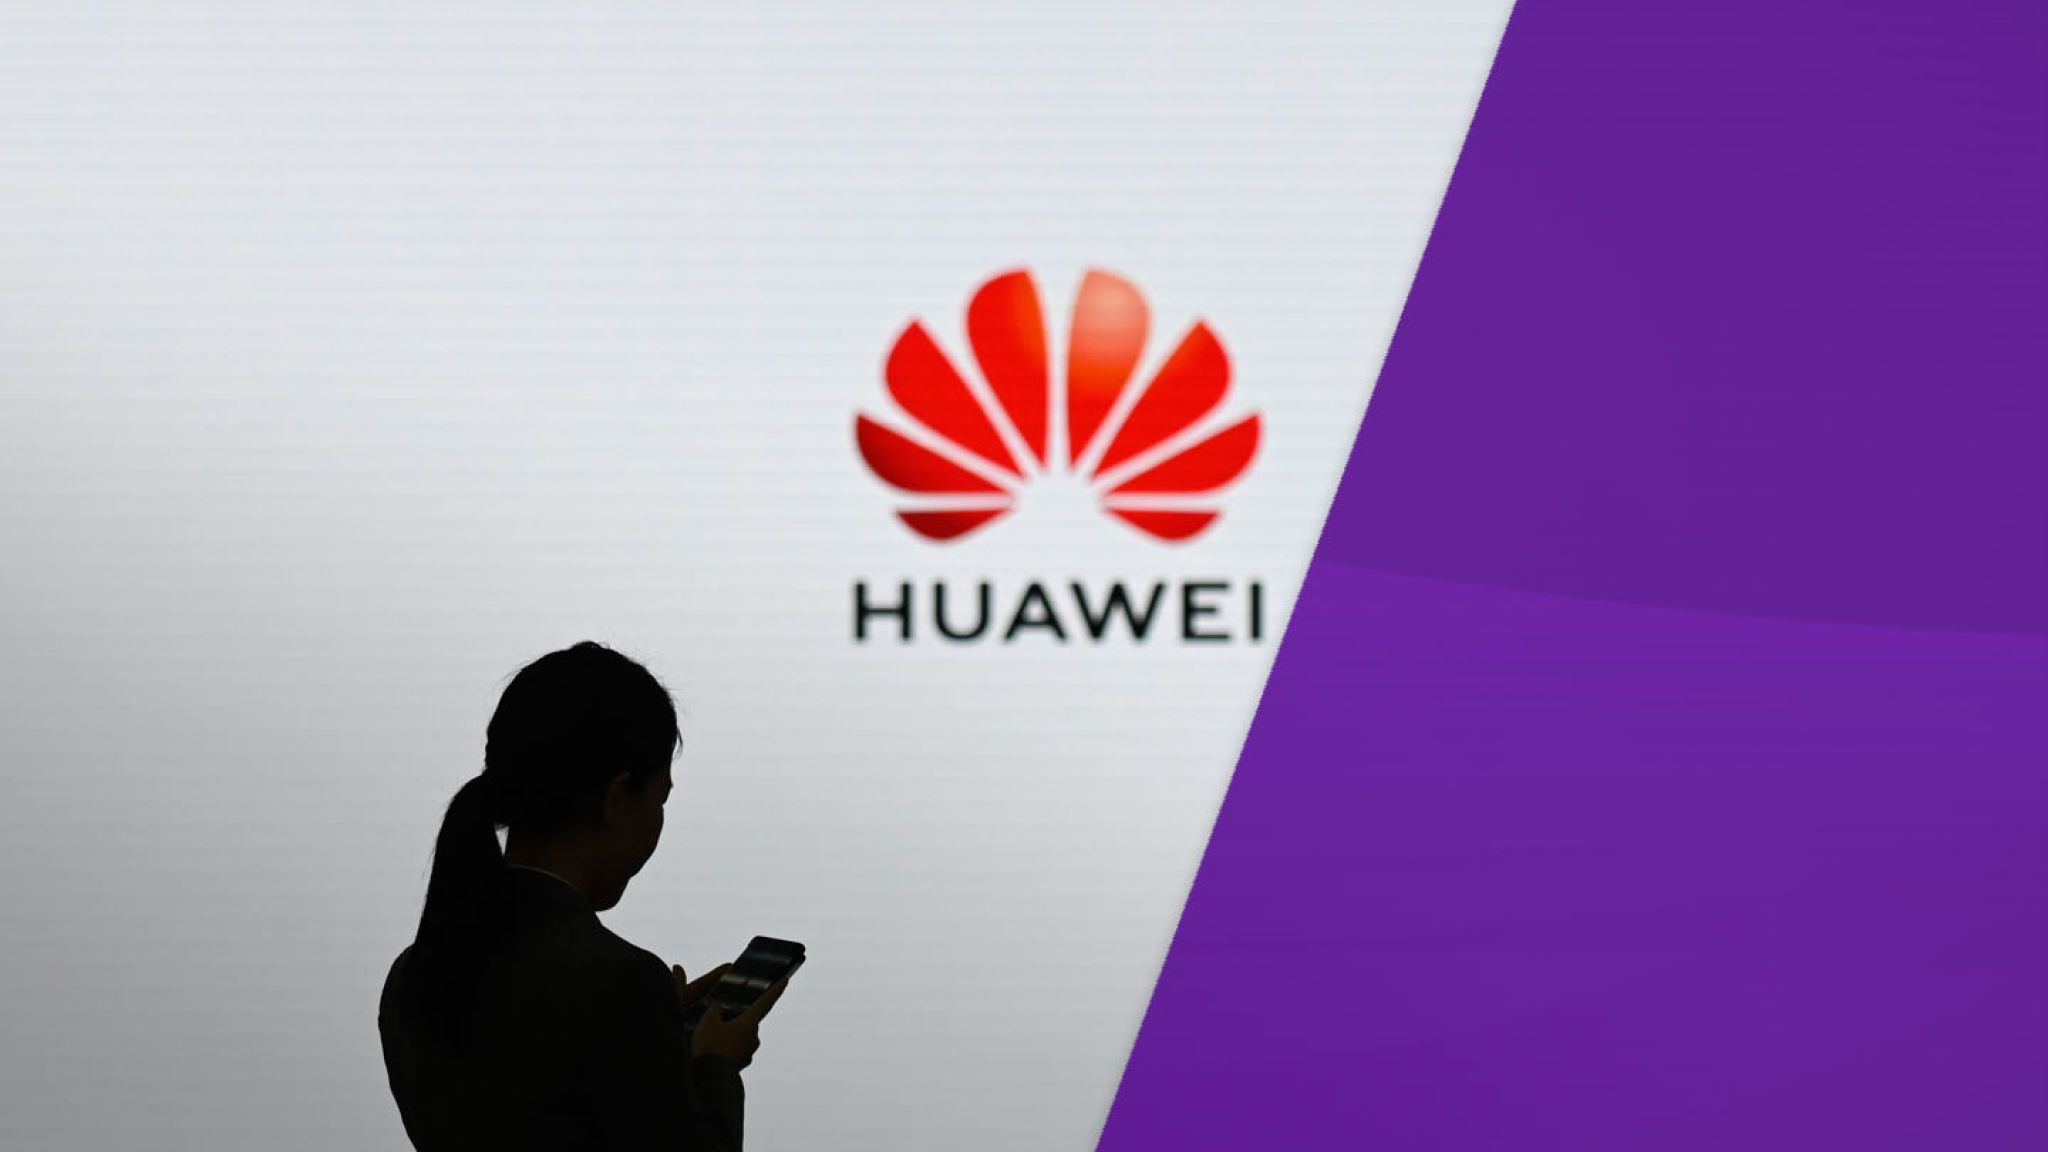 Washington prolonge de 90 jours la période d'exemption — Huawei